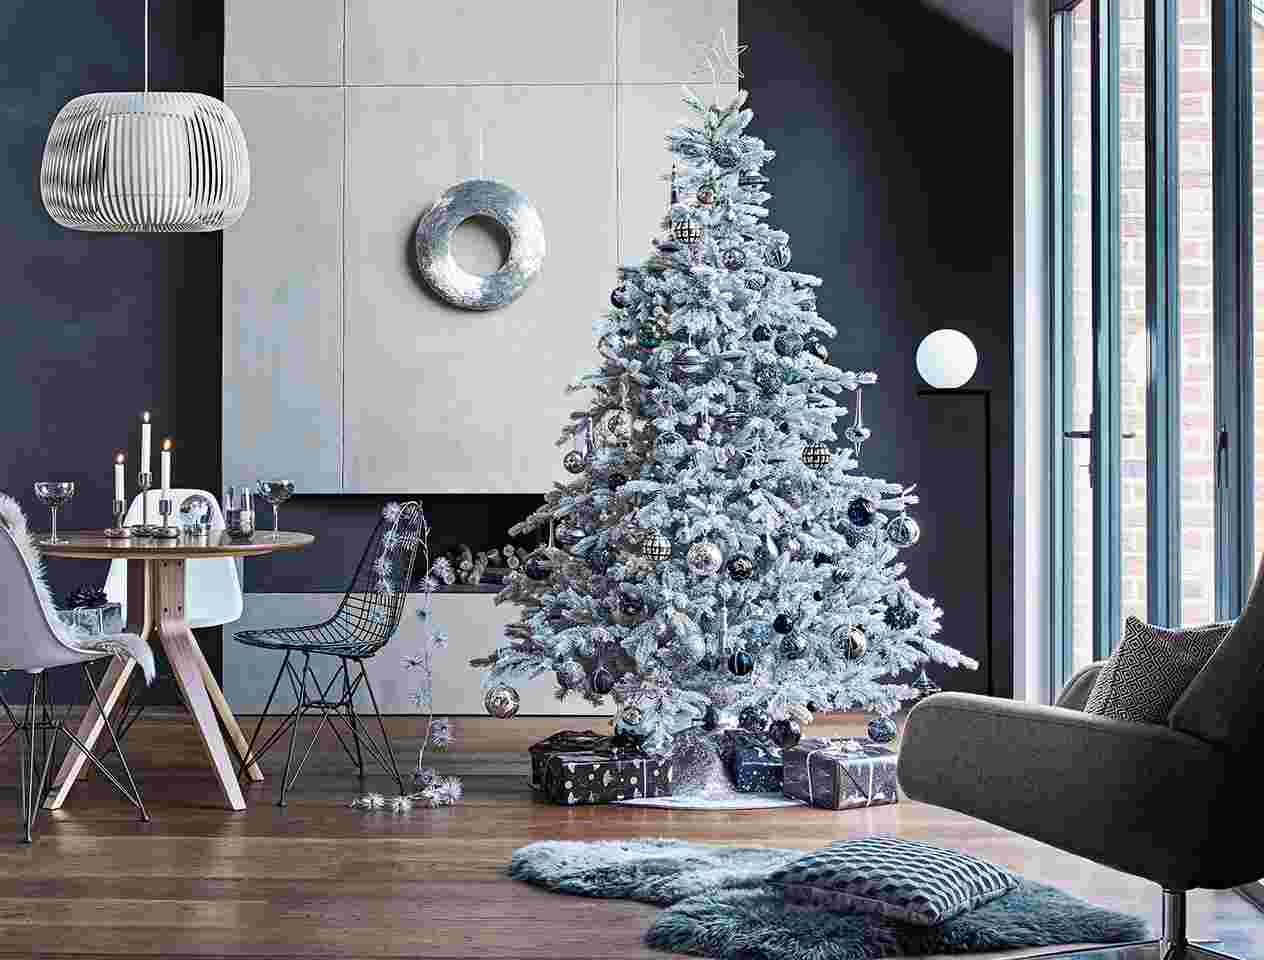 Modern room with white and black Christmas decor